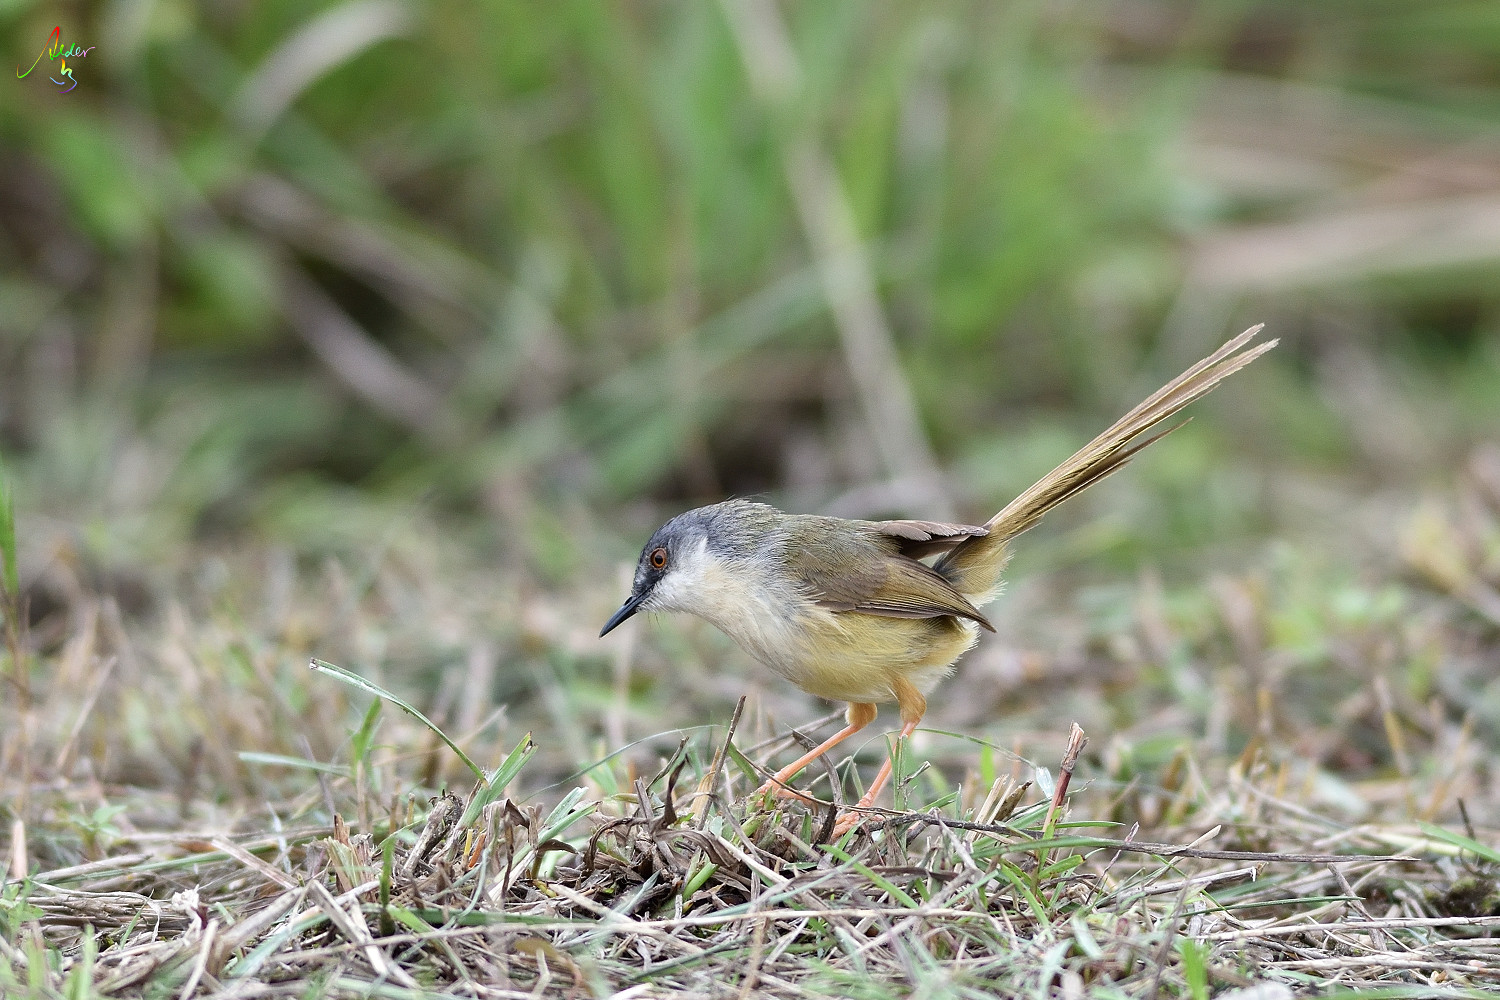 Yellow-bellied_Prinia_3660